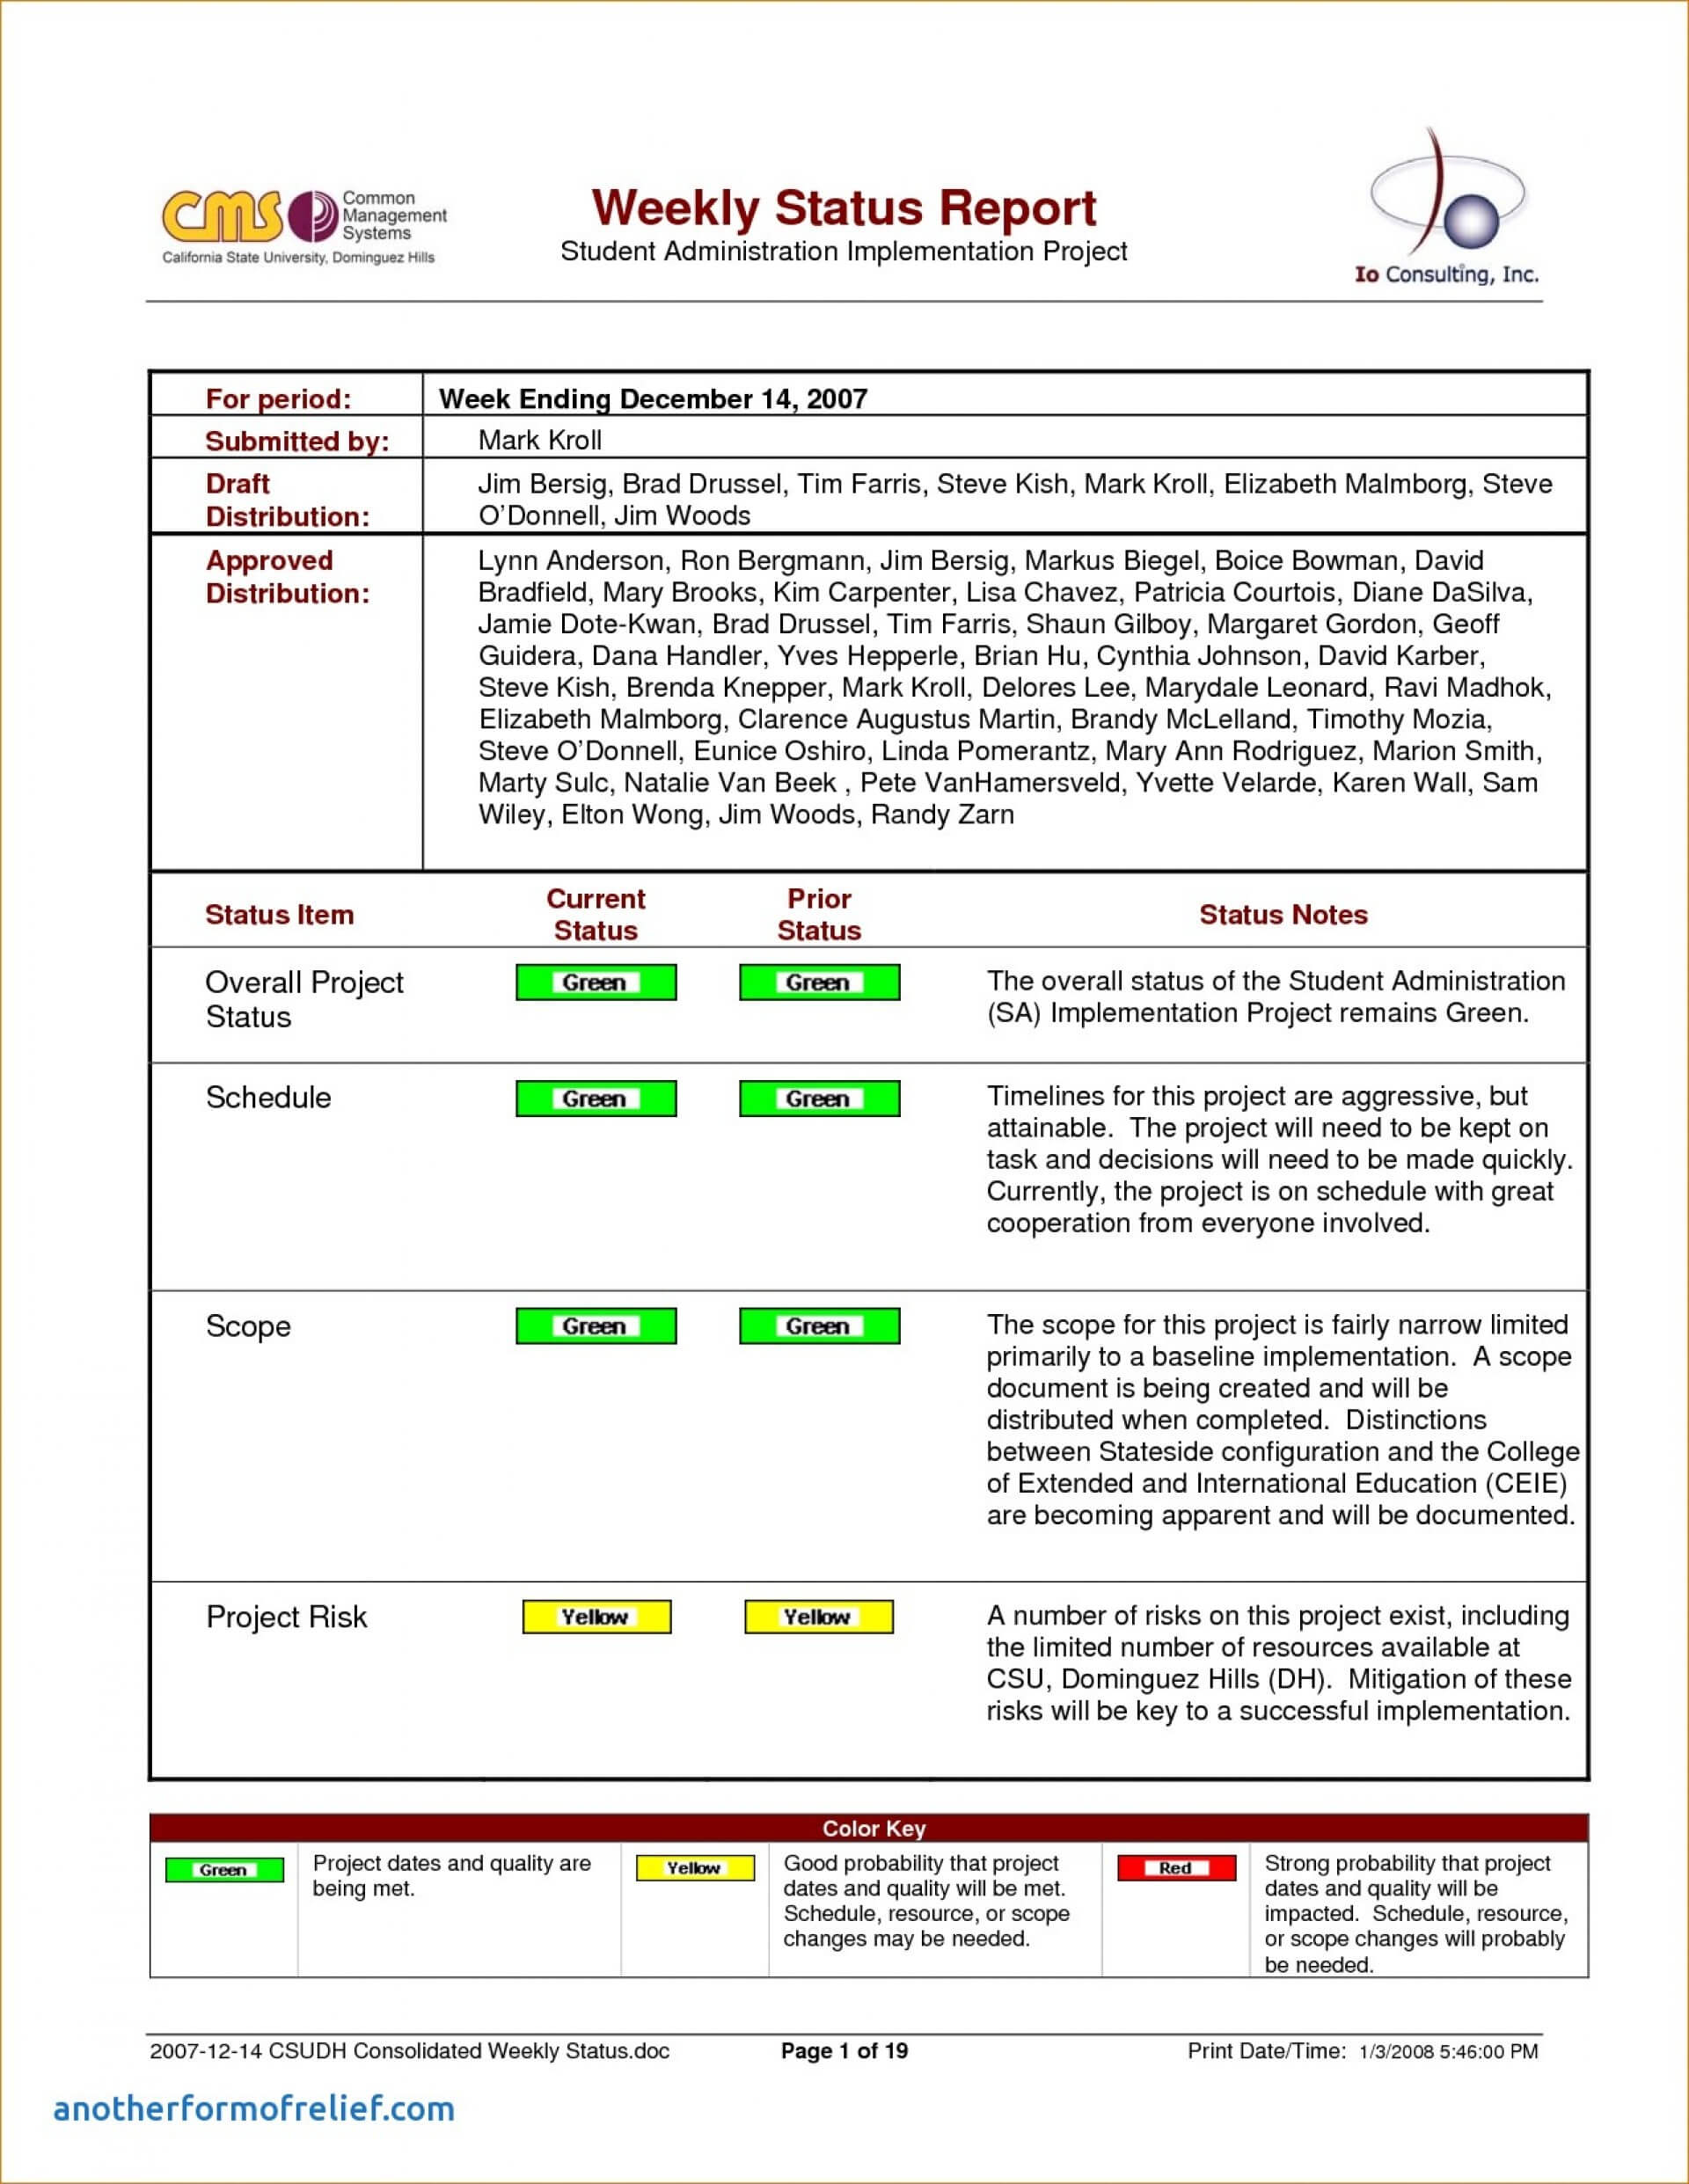 003 Weekly Status Report Template Ideas Impressive Format Within Project Implementation Report Template